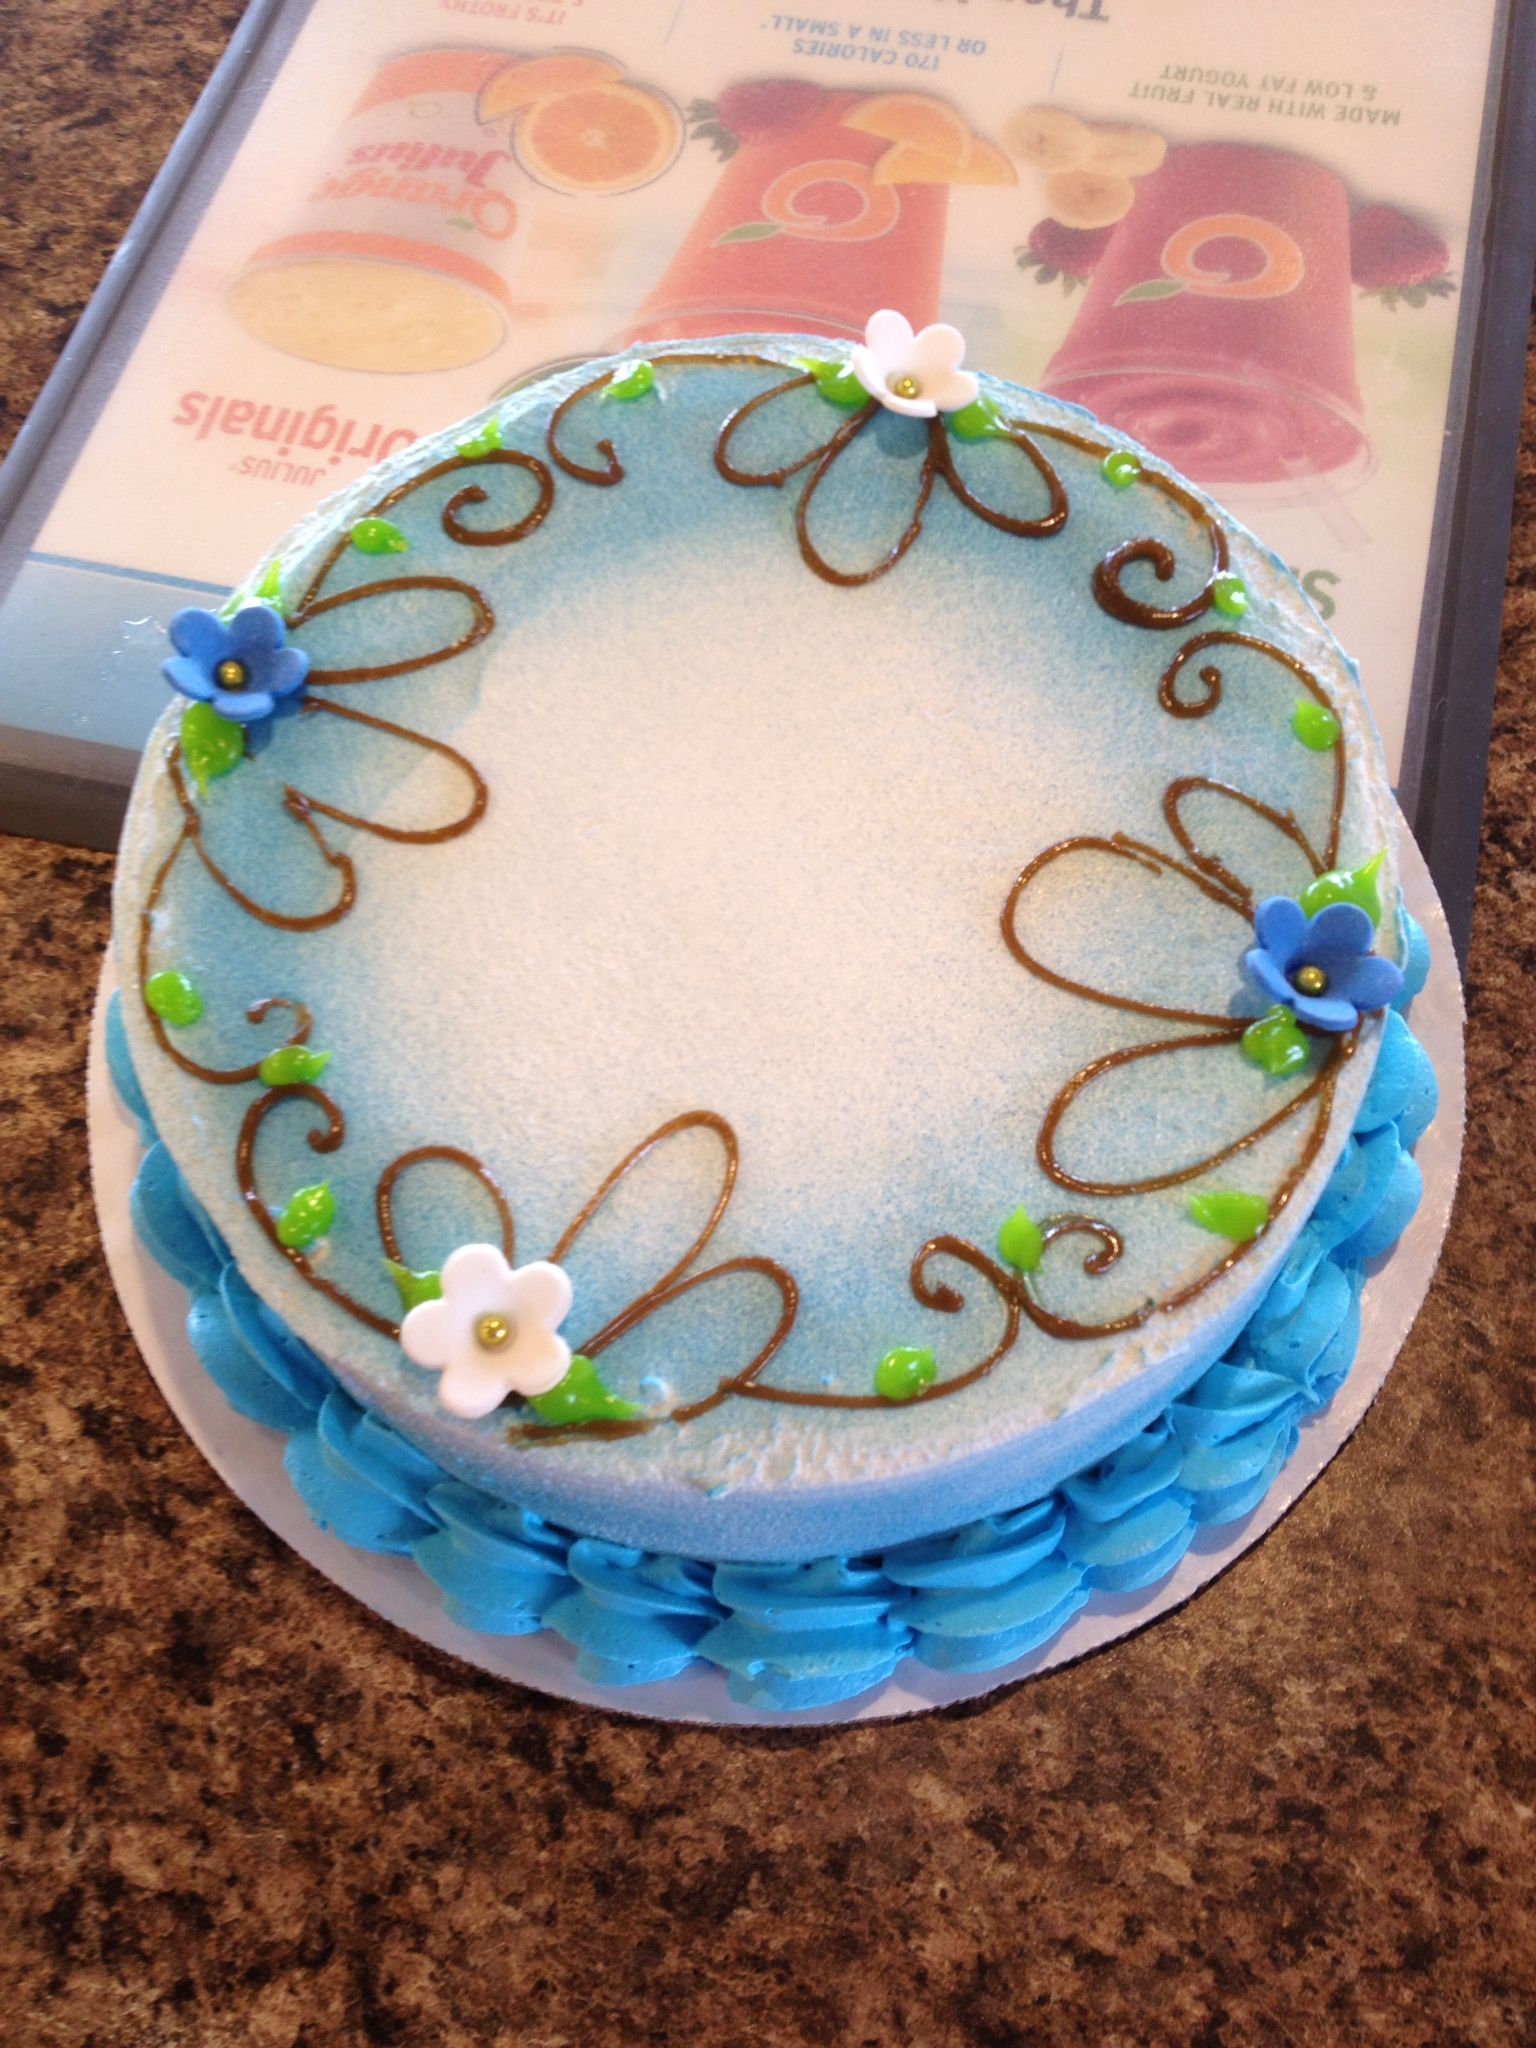 Dq Cakes Dairy Queen Airbrush Cake Dairy Queen Cake Cake